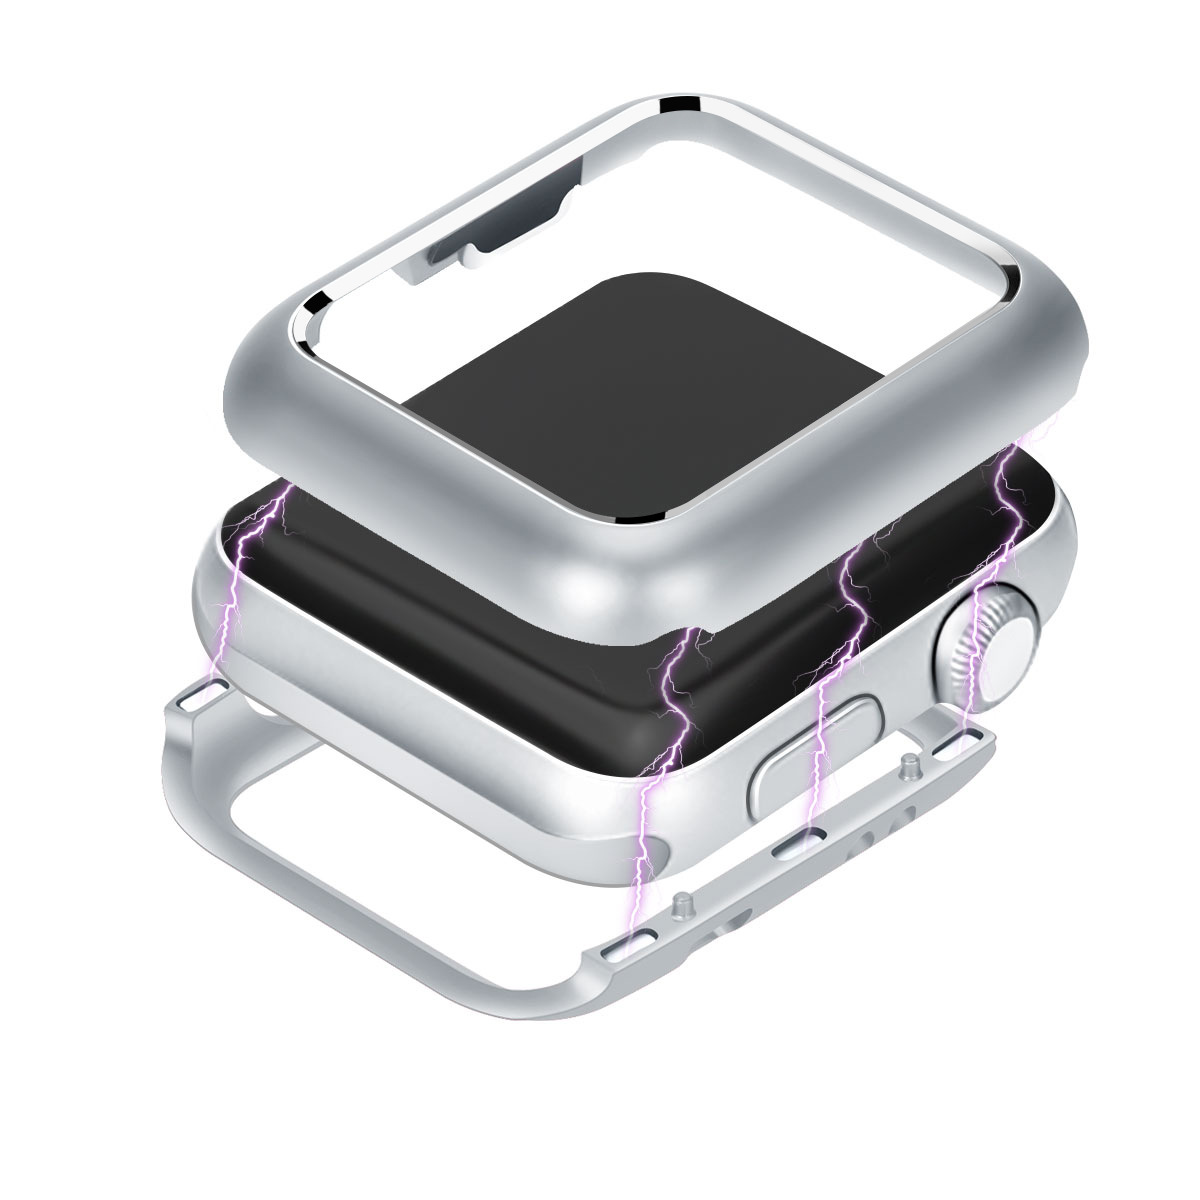 EIMO Protective case for apple watch band 4 44mm 40mm iwatch series 4 3 2 1 42mm 38mm magnetic adsorption technology aluminumEIMO Protective case for apple watch band 4 44mm 40mm iwatch series 4 3 2 1 42mm 38mm magnetic adsorption technology aluminum